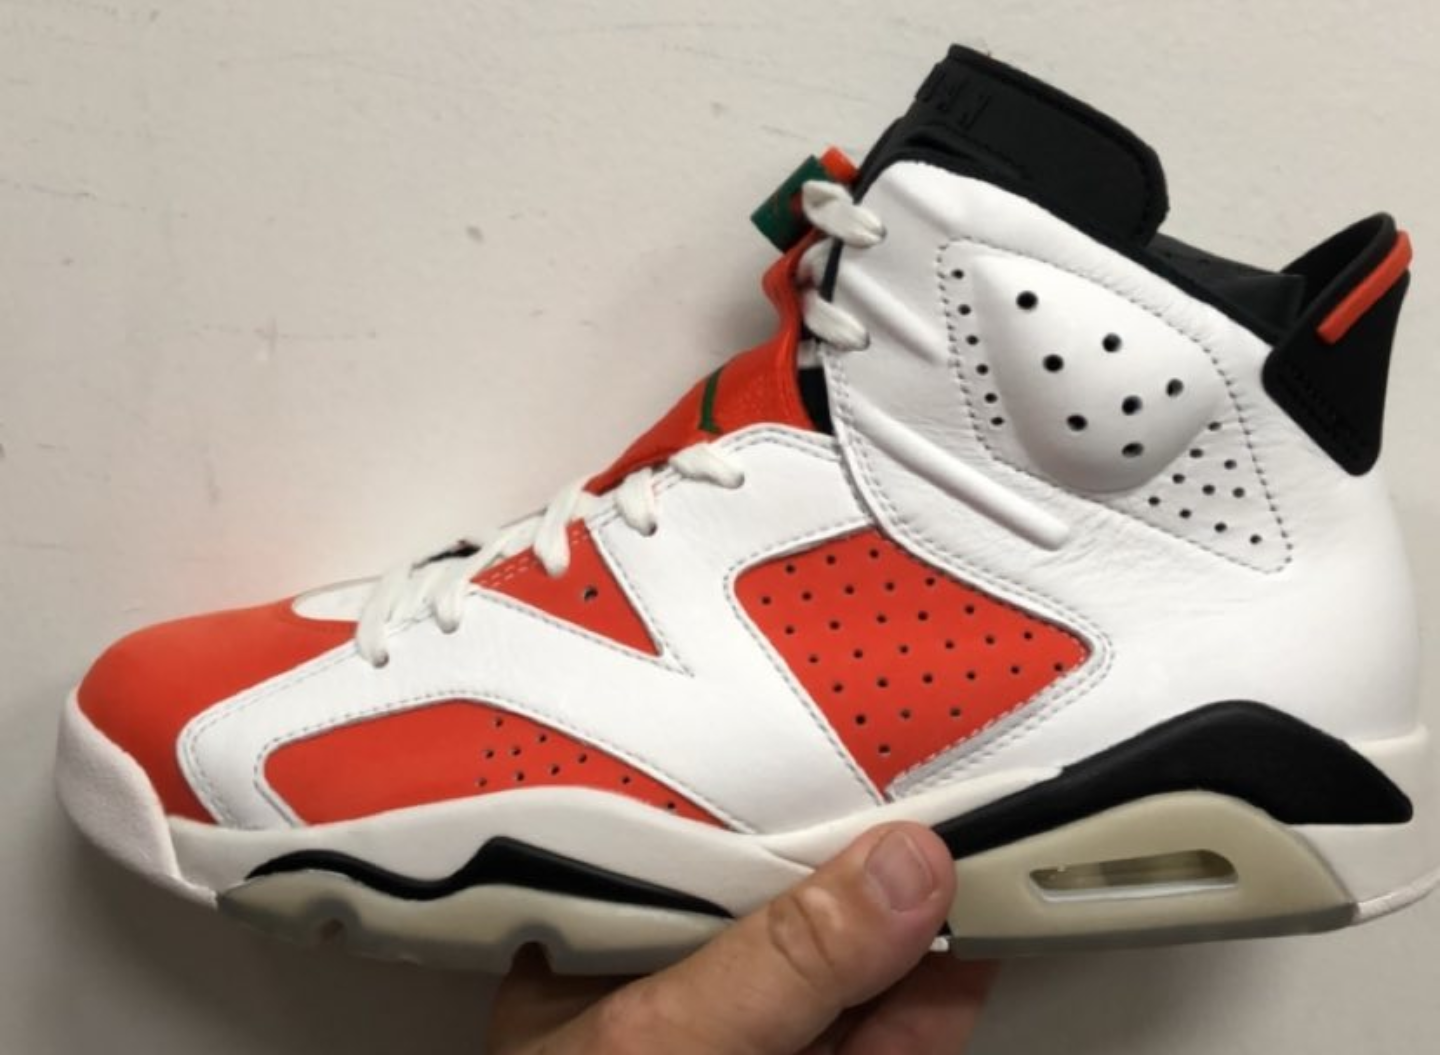 hot sale online 0a2ec 6ccac Detailed Look at the Air Jordan 6 'Gatorade' - WearTesters